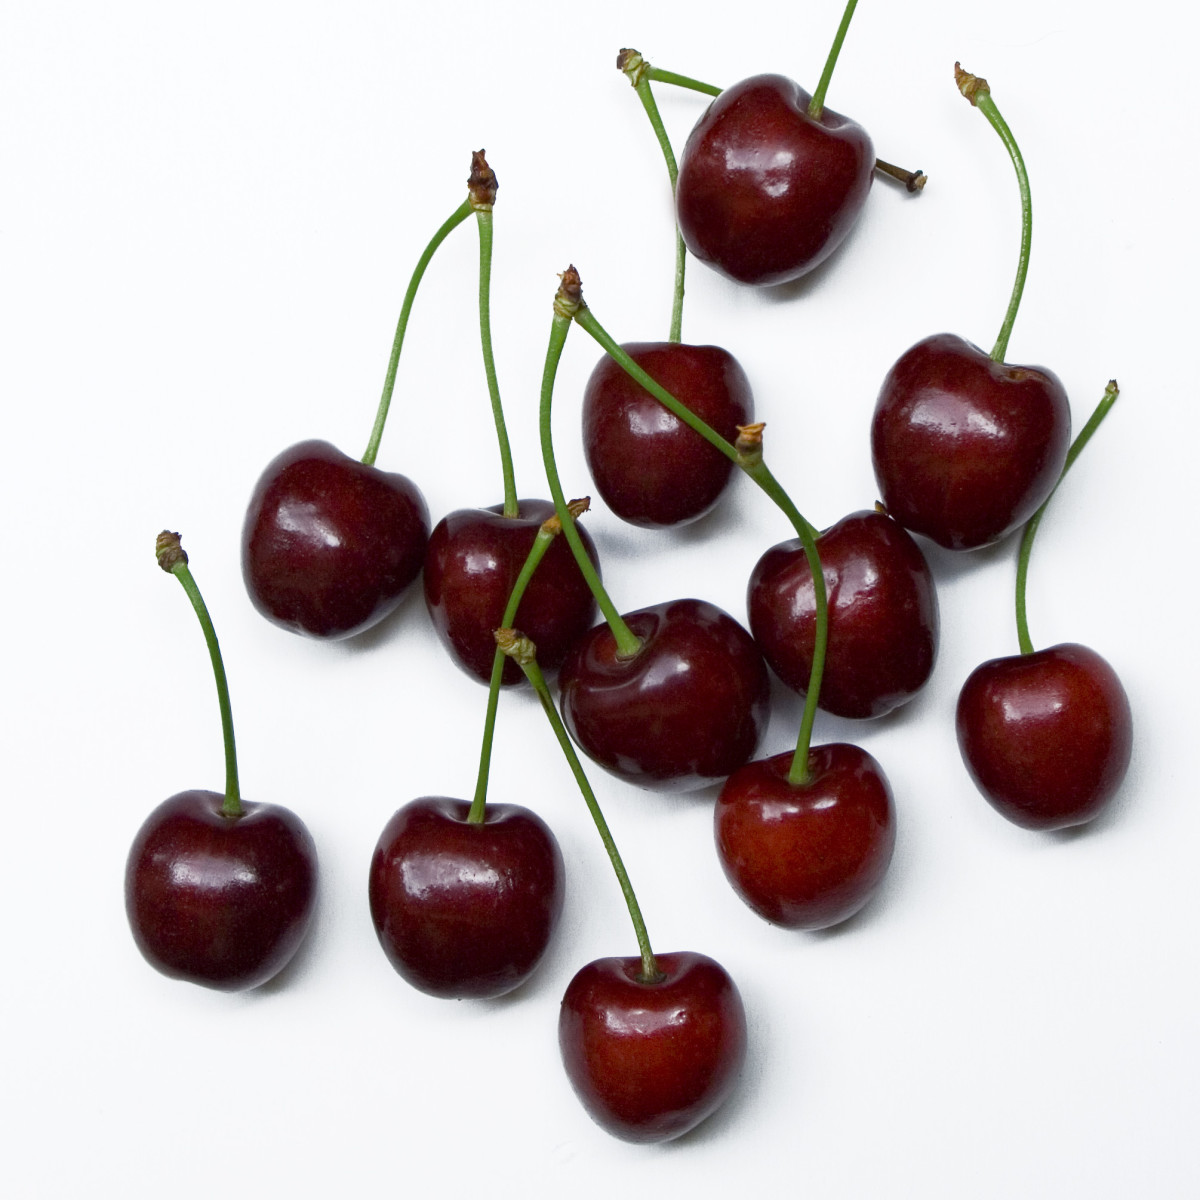 Facts, Nutritional And Health Benefits Of Cherry And Tart Cherry